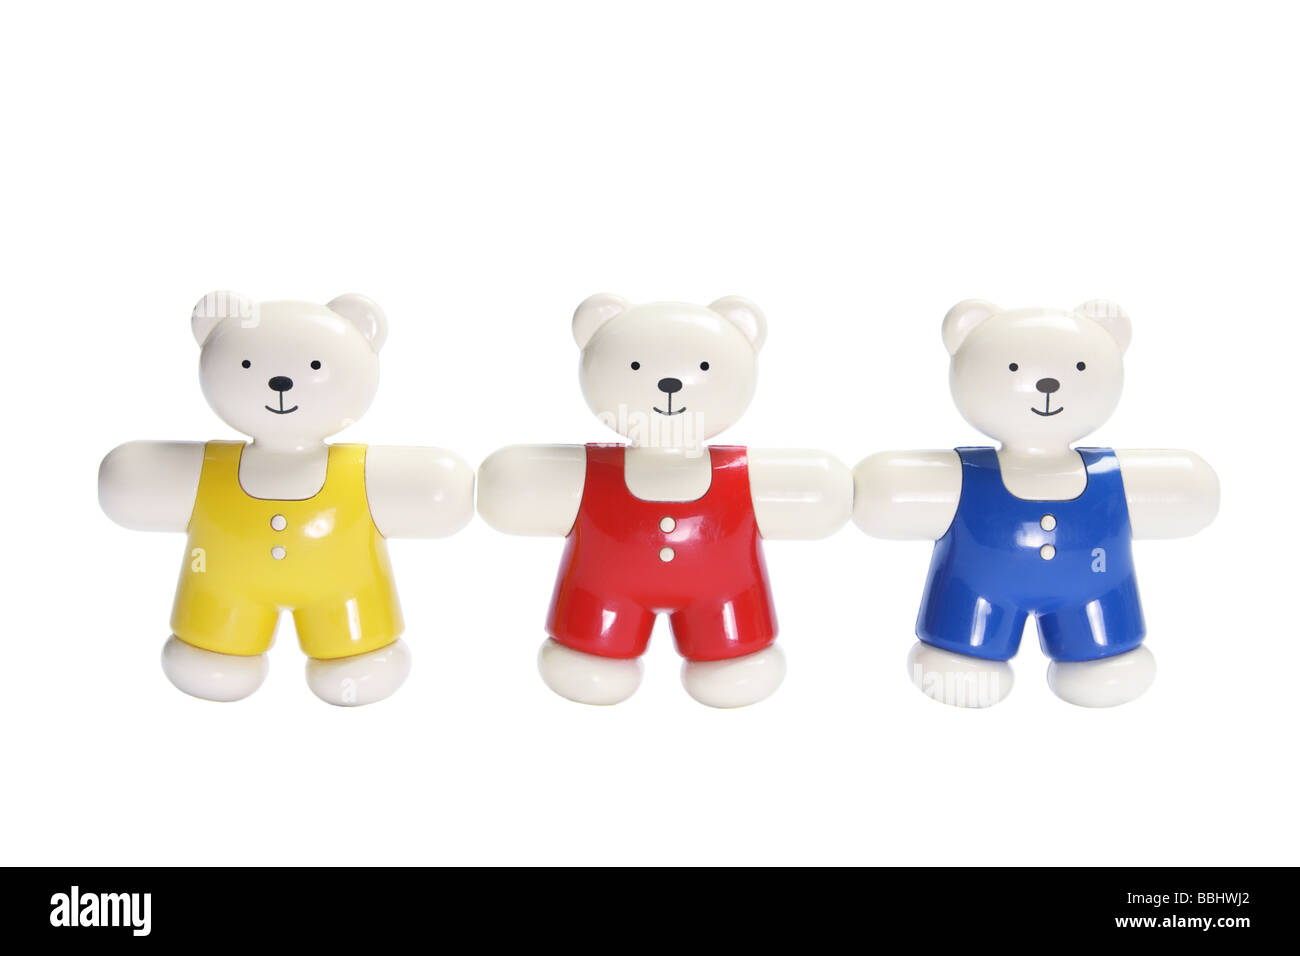 Free Teddy Bears Clipart, Download Free Clip Art, Free Clip Art on Clipart  Library